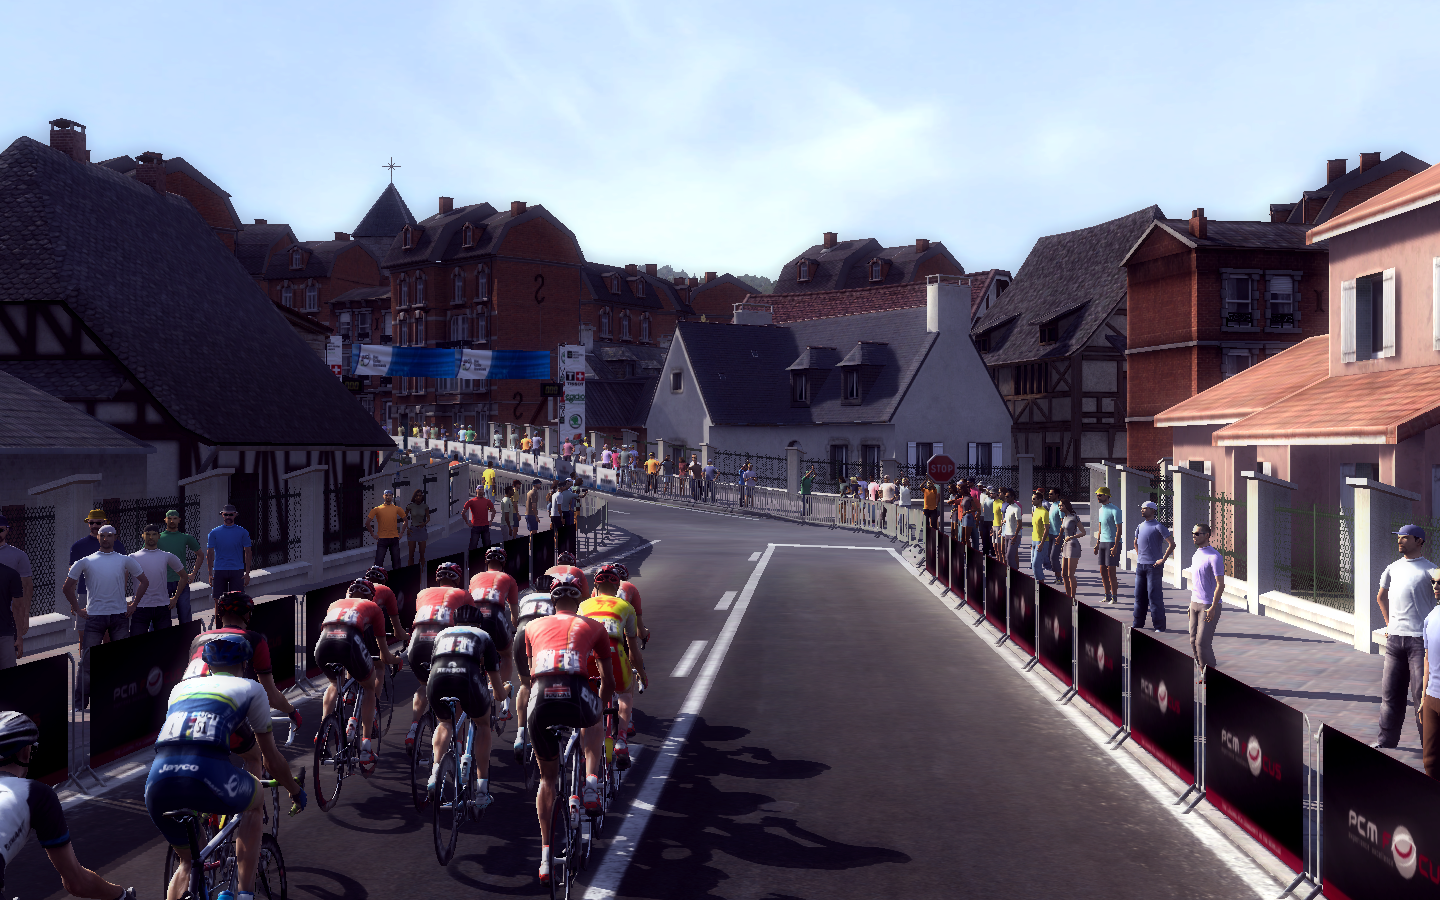 Stages ricardo123 - MSR 2014 (update) + 2 more 2qnmbe1